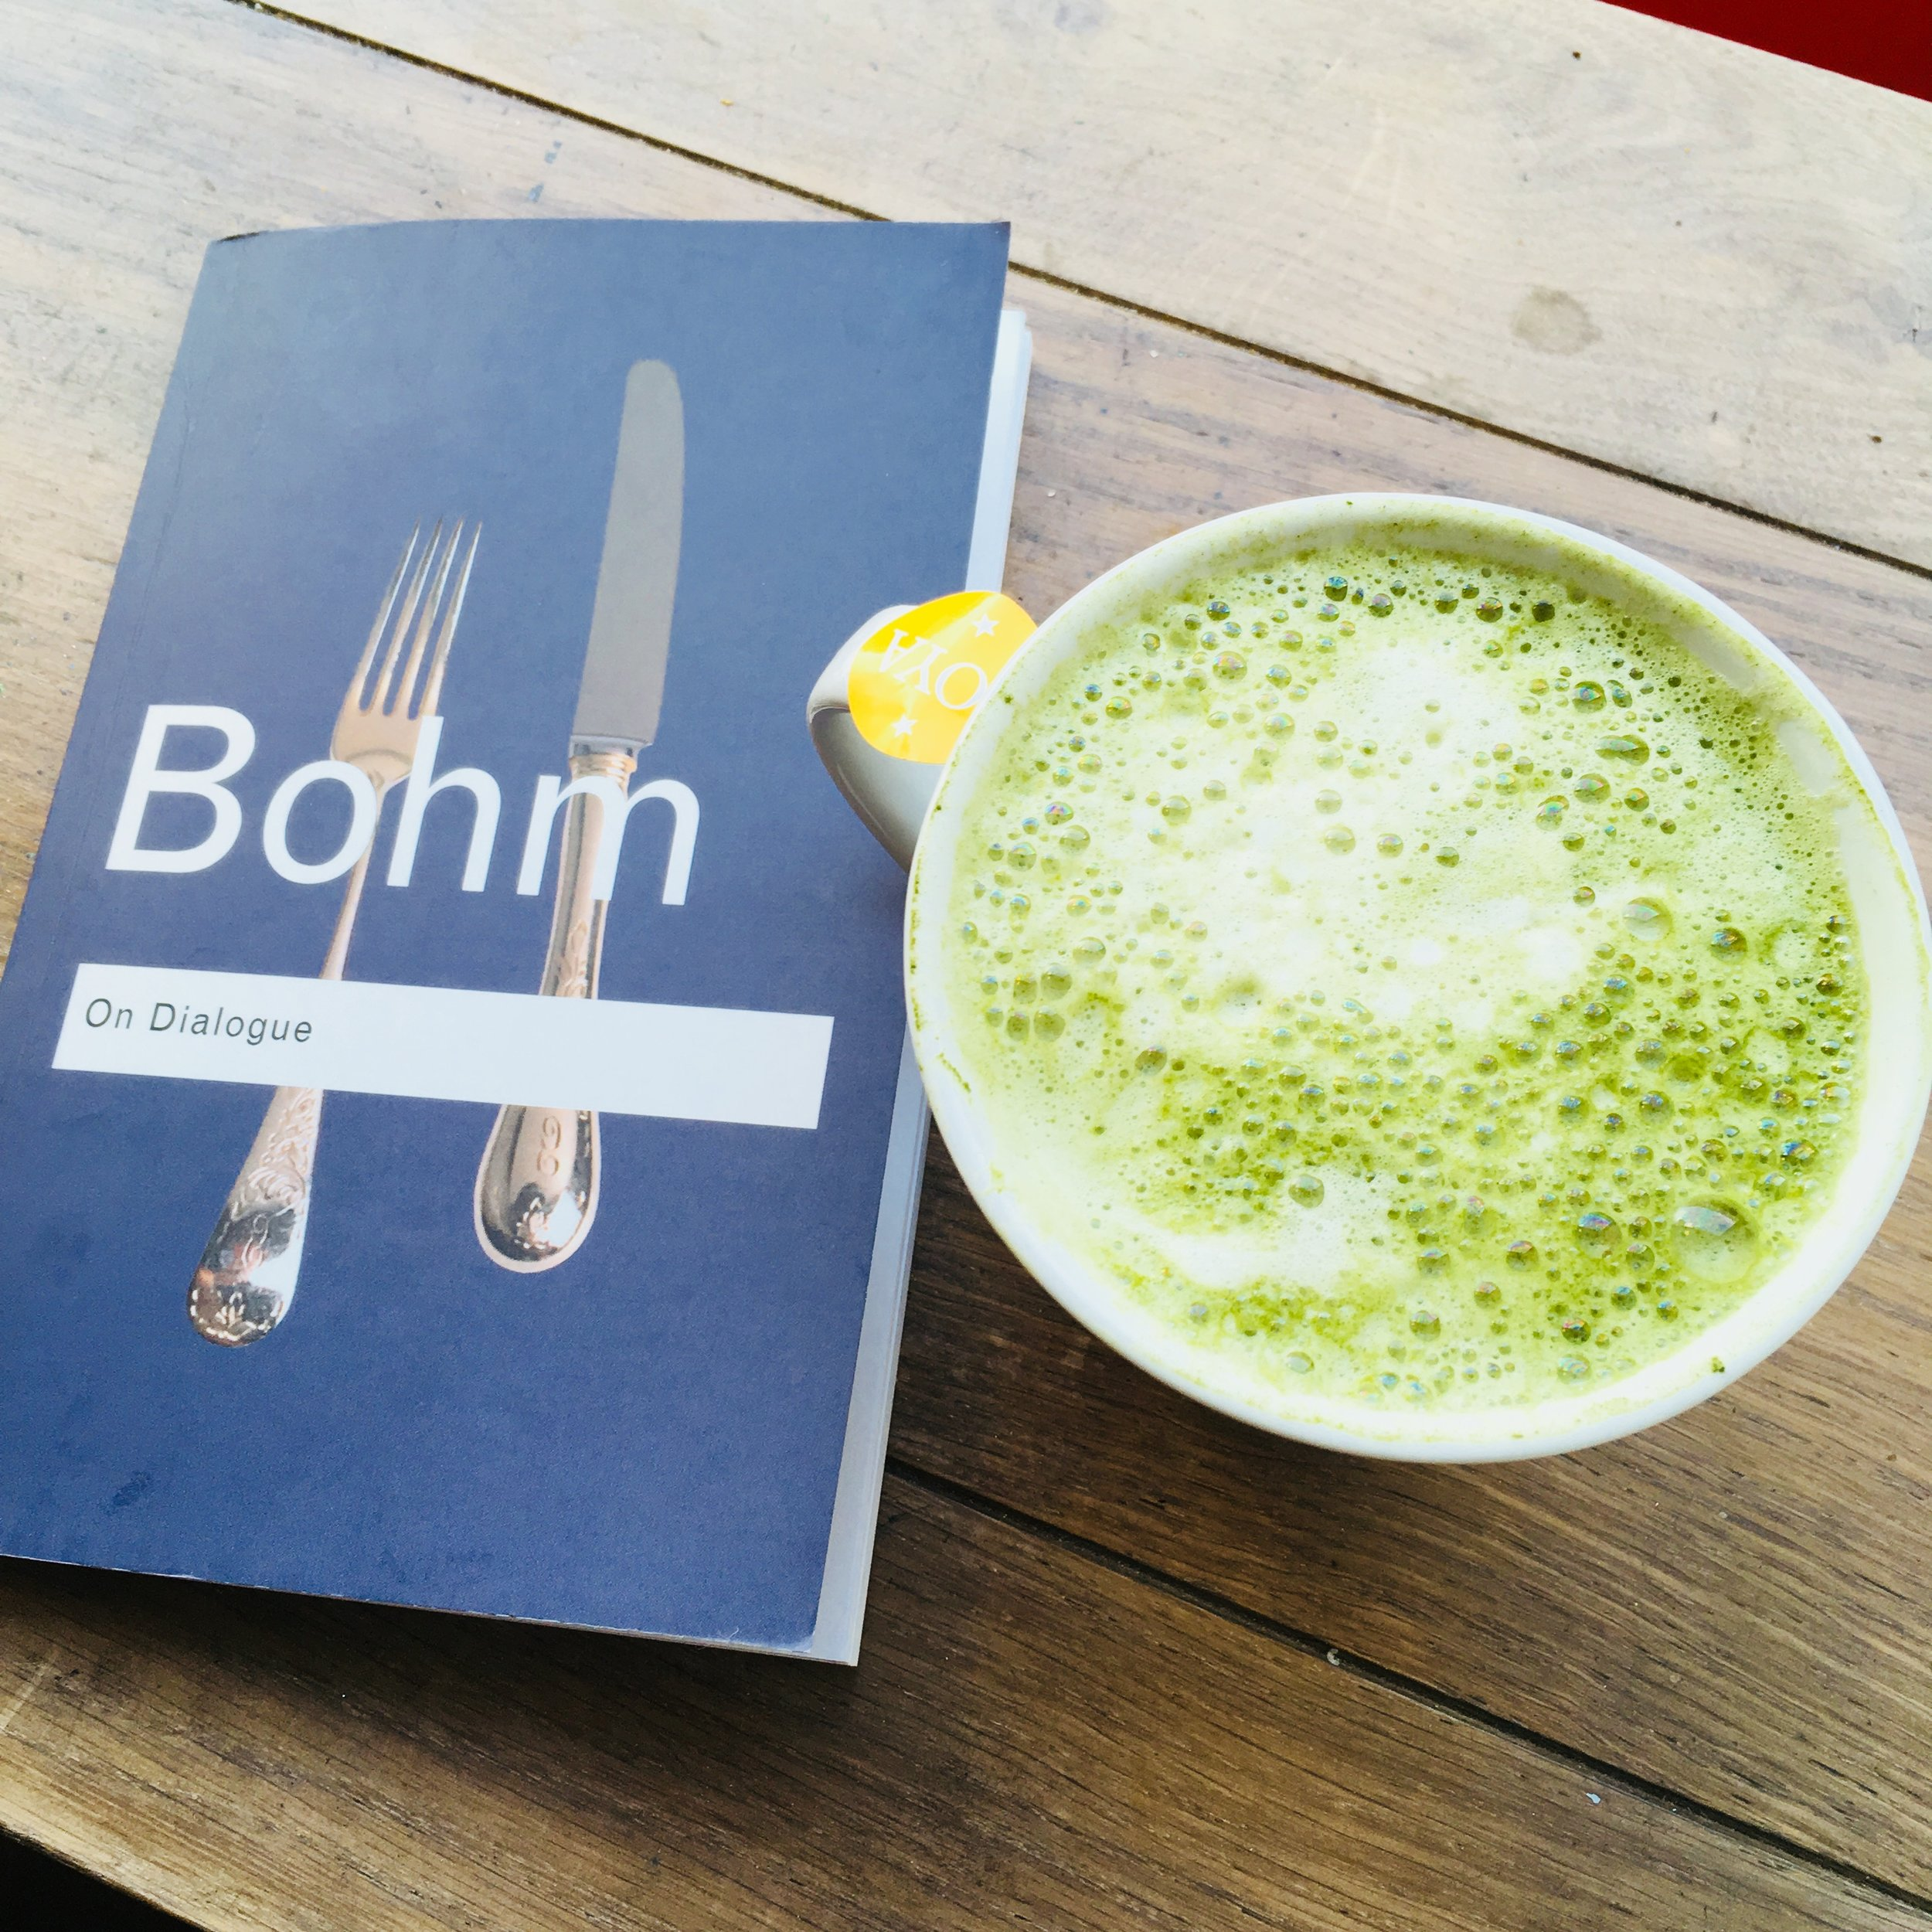 On Dialogue and a Pret matcha latte.